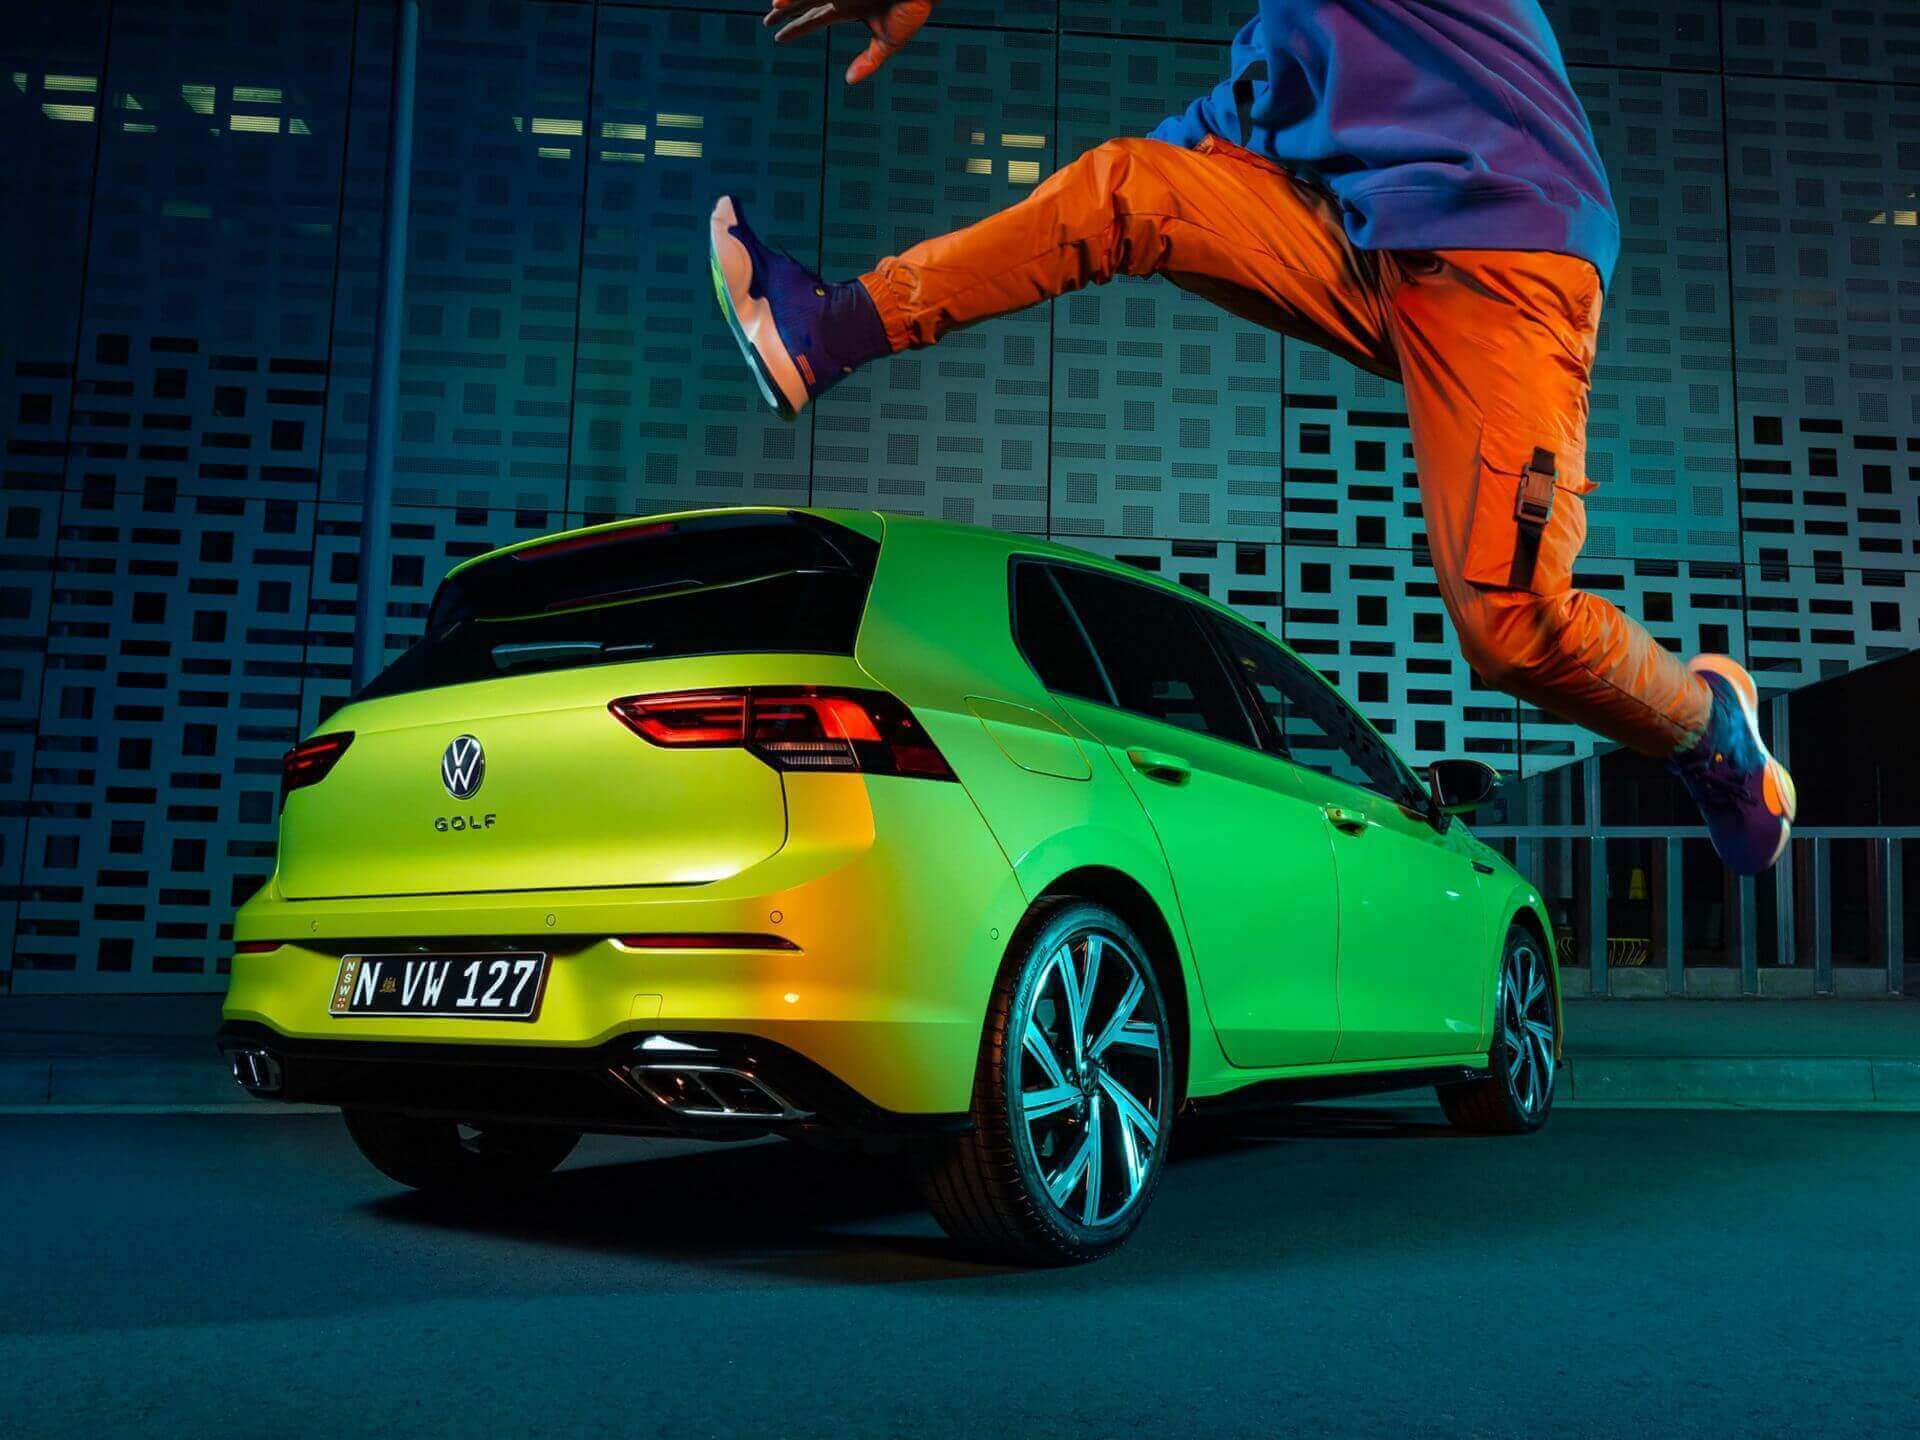 Visibly dynamic, undeniably Golf Exterior Image